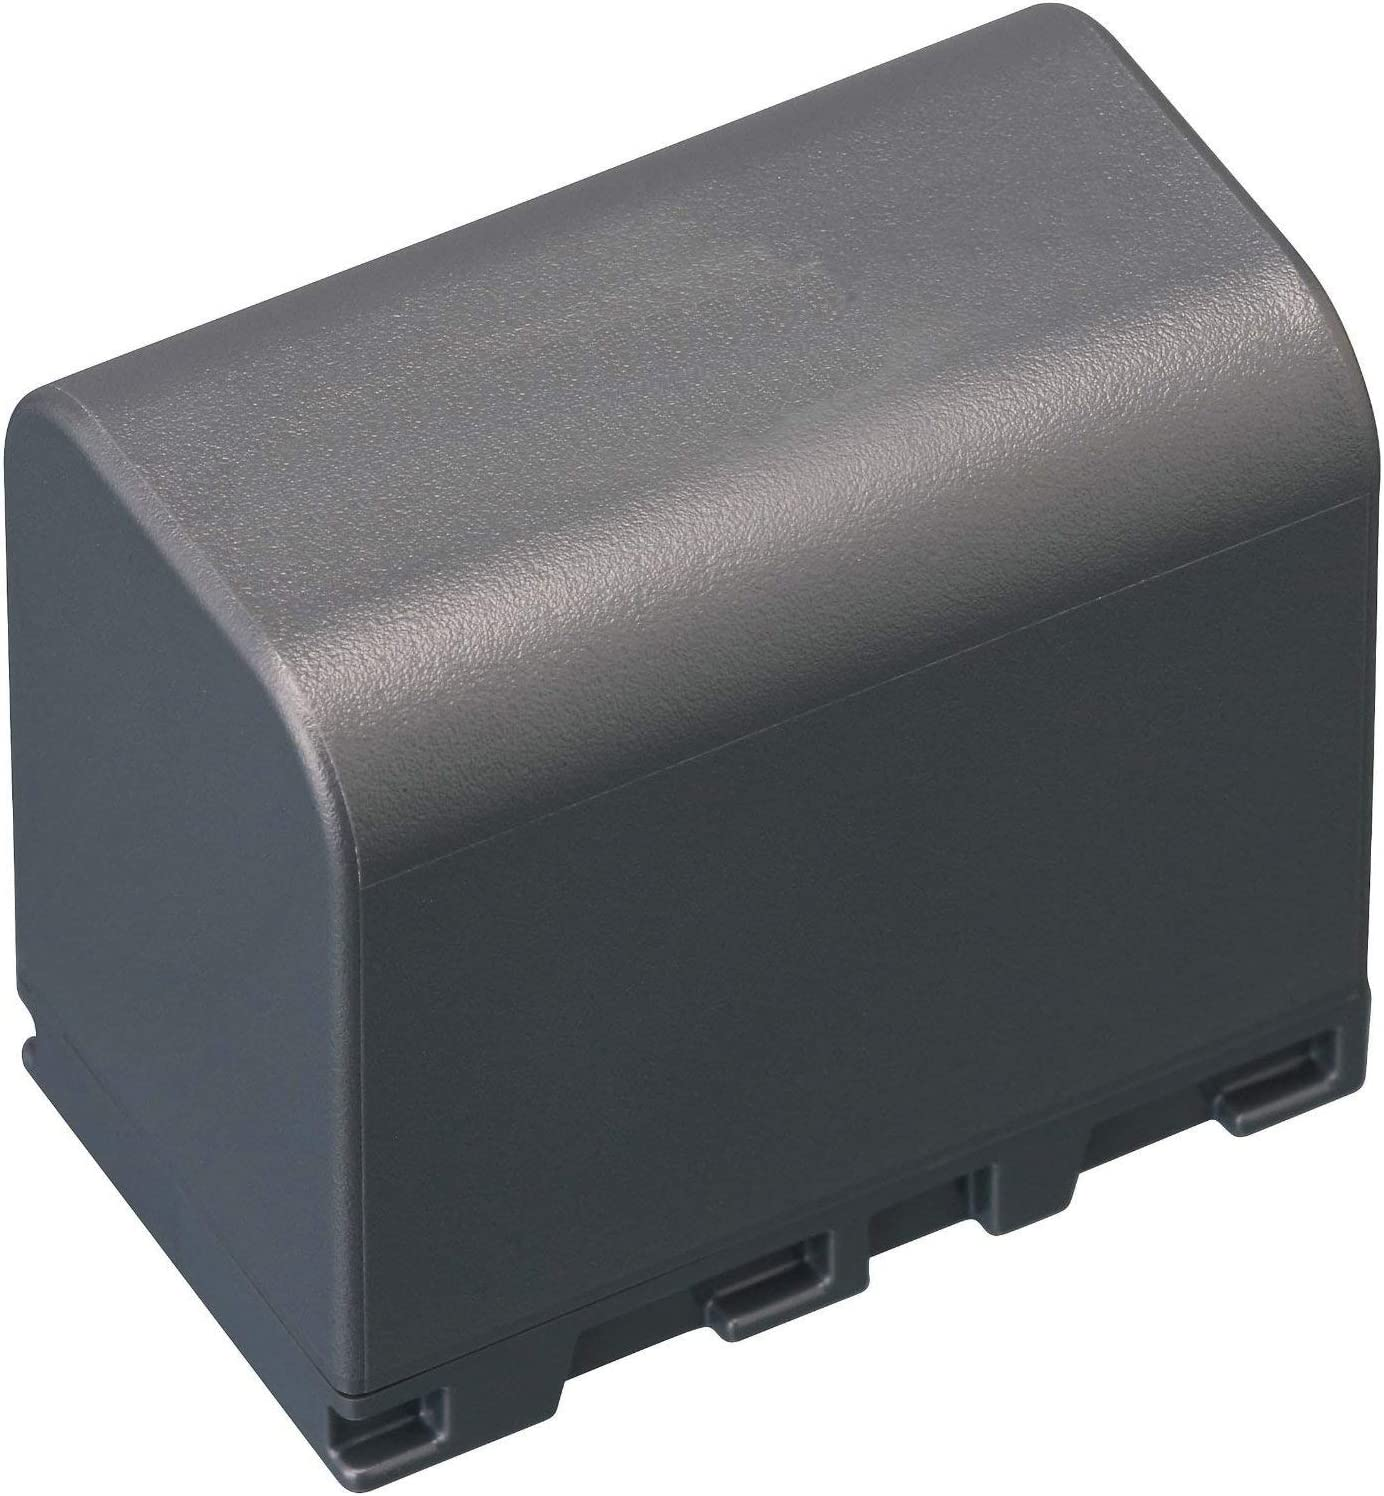 Ultra High Capacity Intelligent Lithium-Ion Battery for JVC GY-HM100 3 Year Replacement Warranty